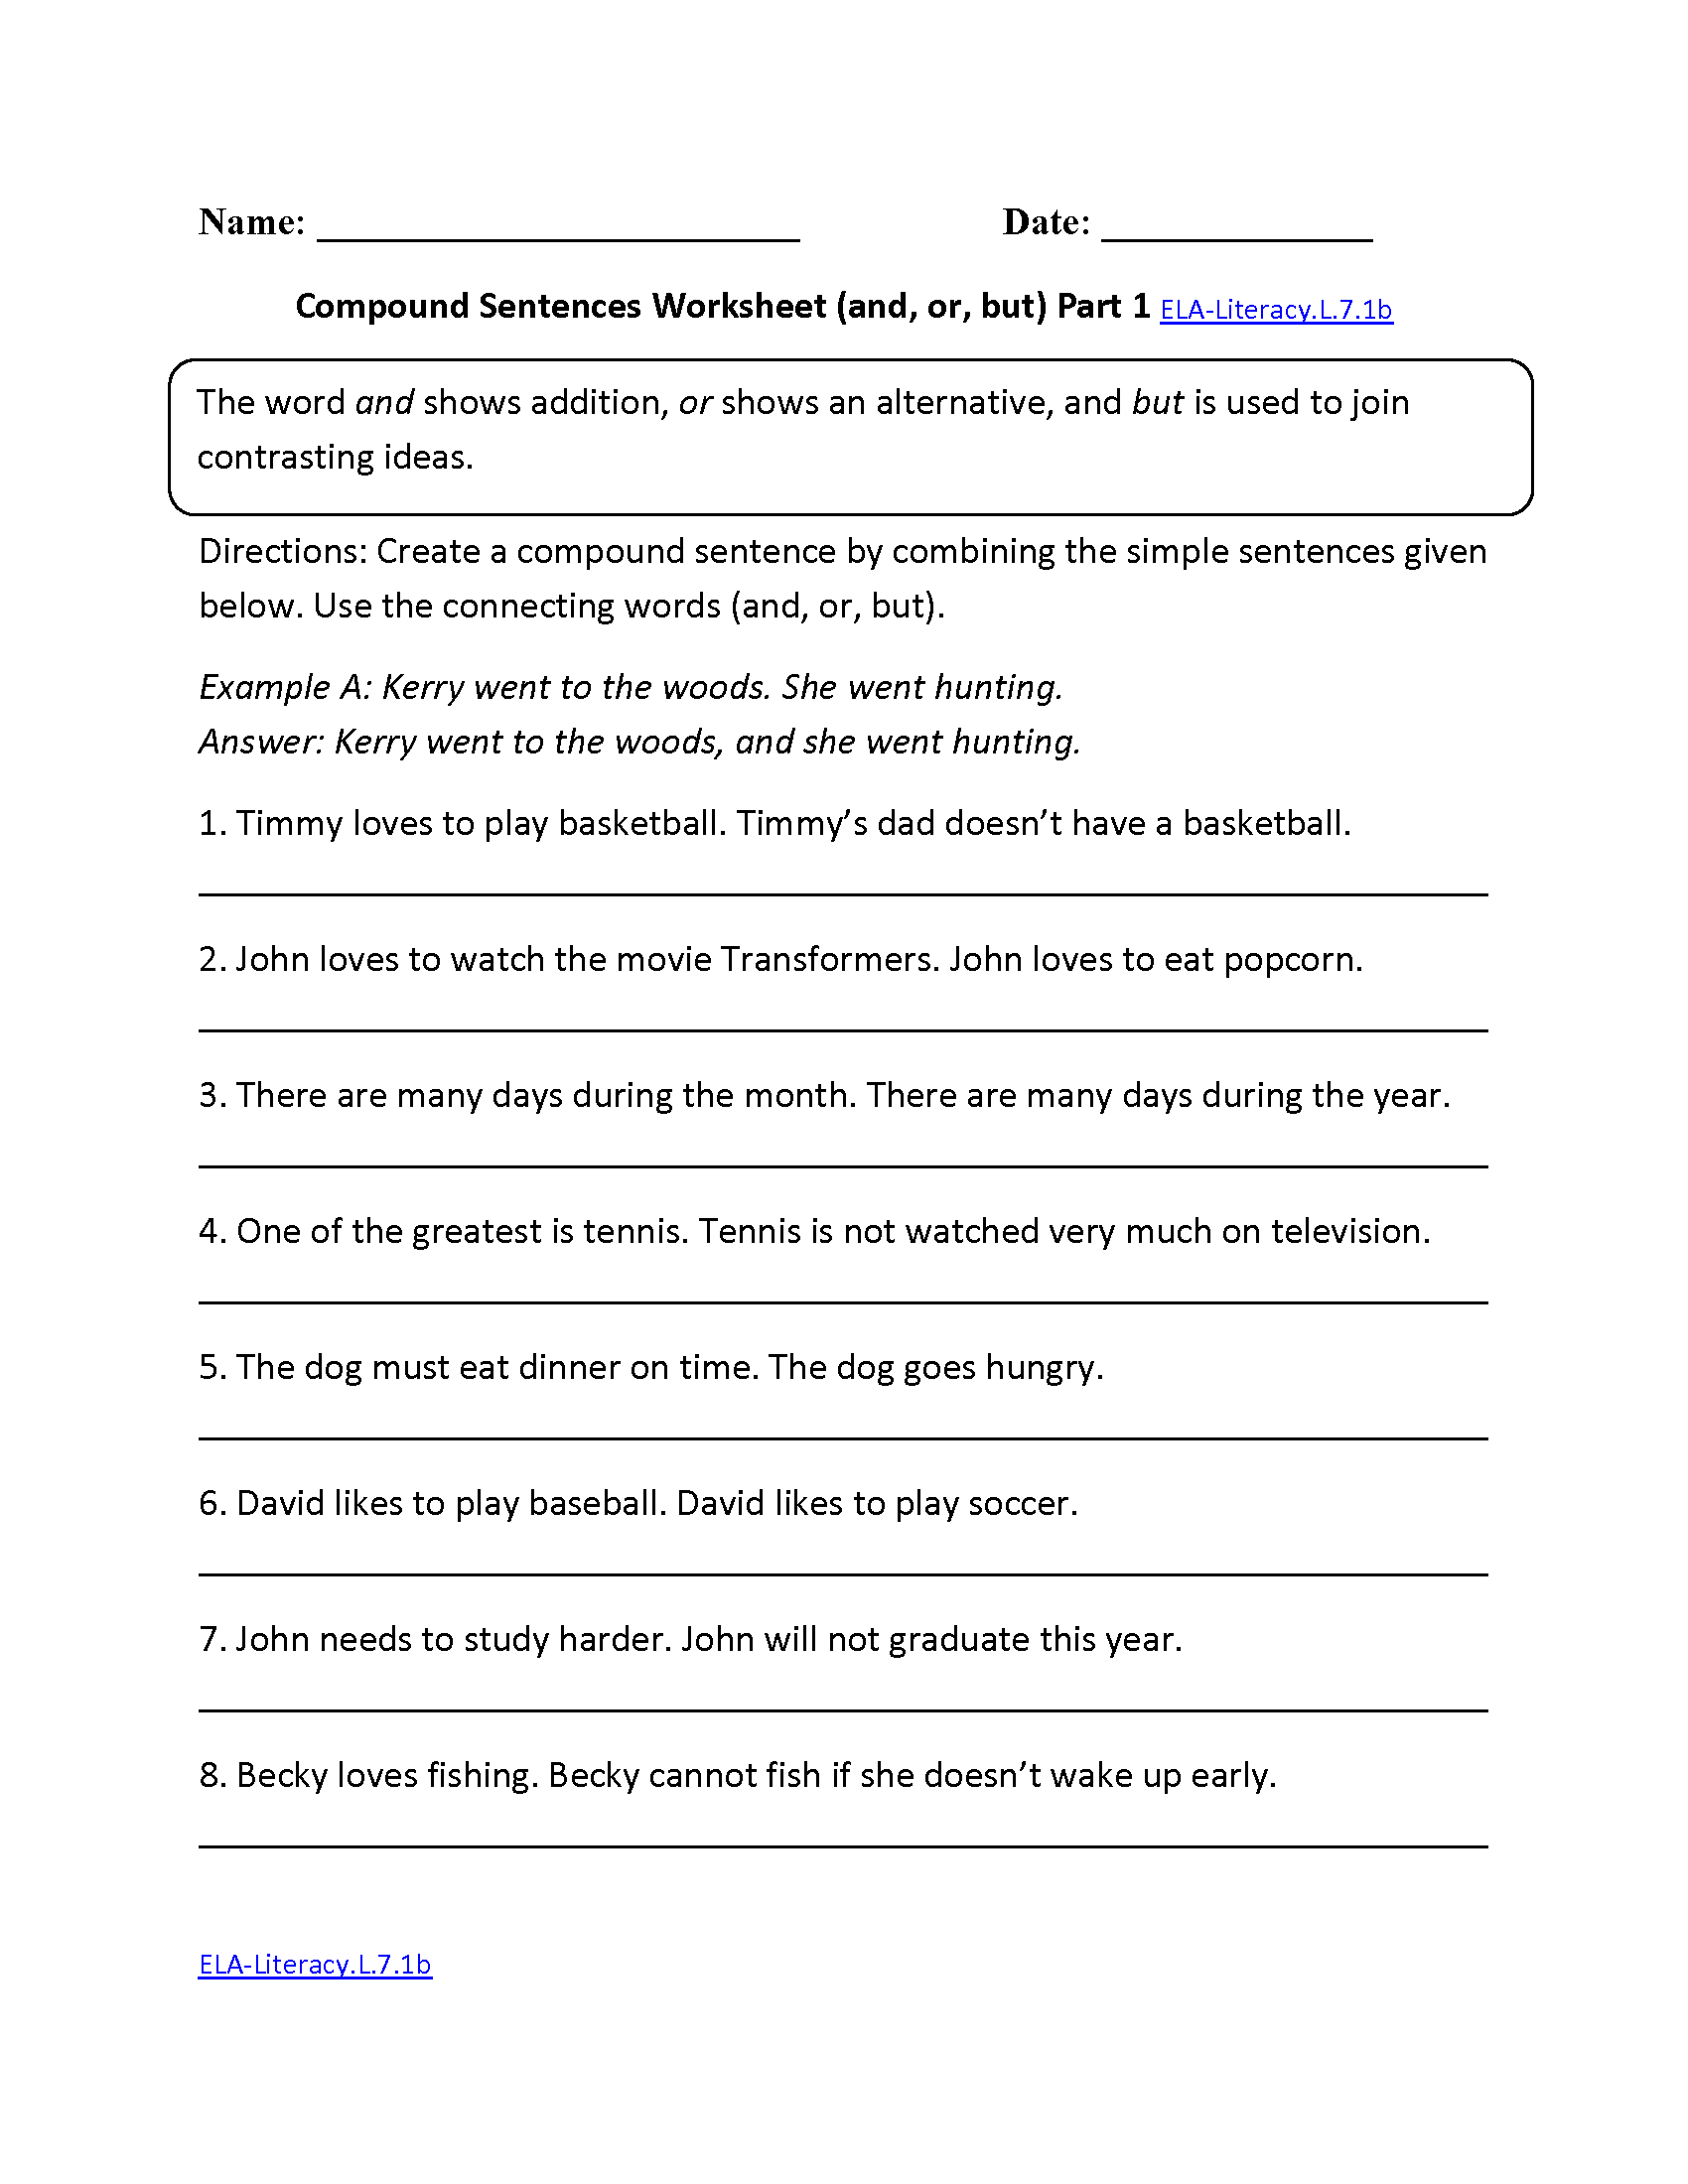 Worksheets Common Core Ela Worksheets 7th grade common core language worksheets compound sentences worksheet ela literacy l 7 1b worksheet